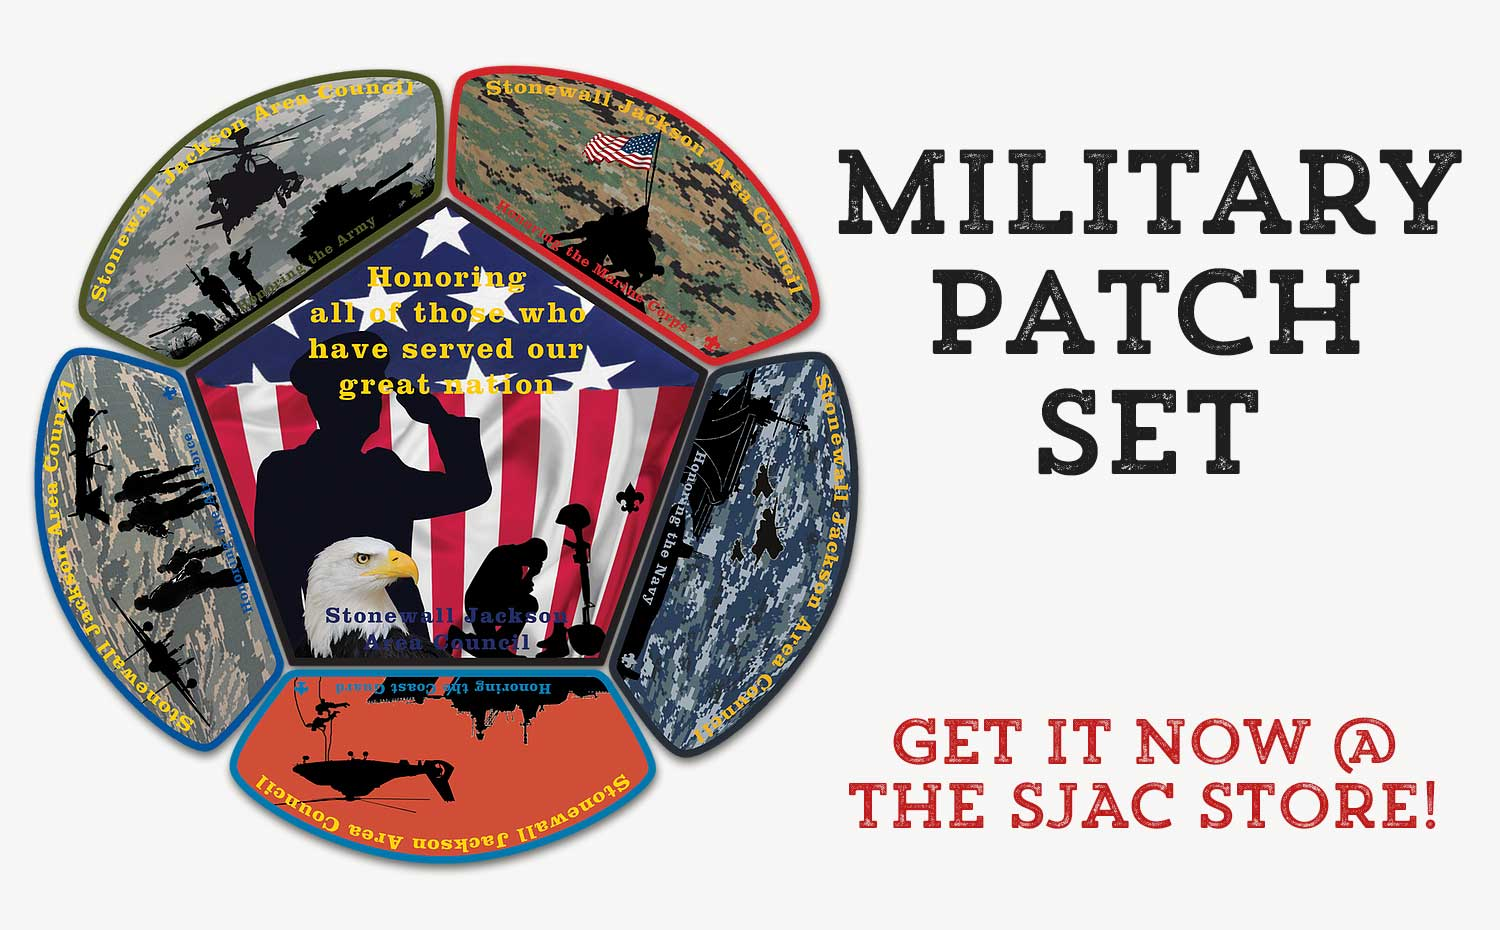 Military Patch Set Now Available!